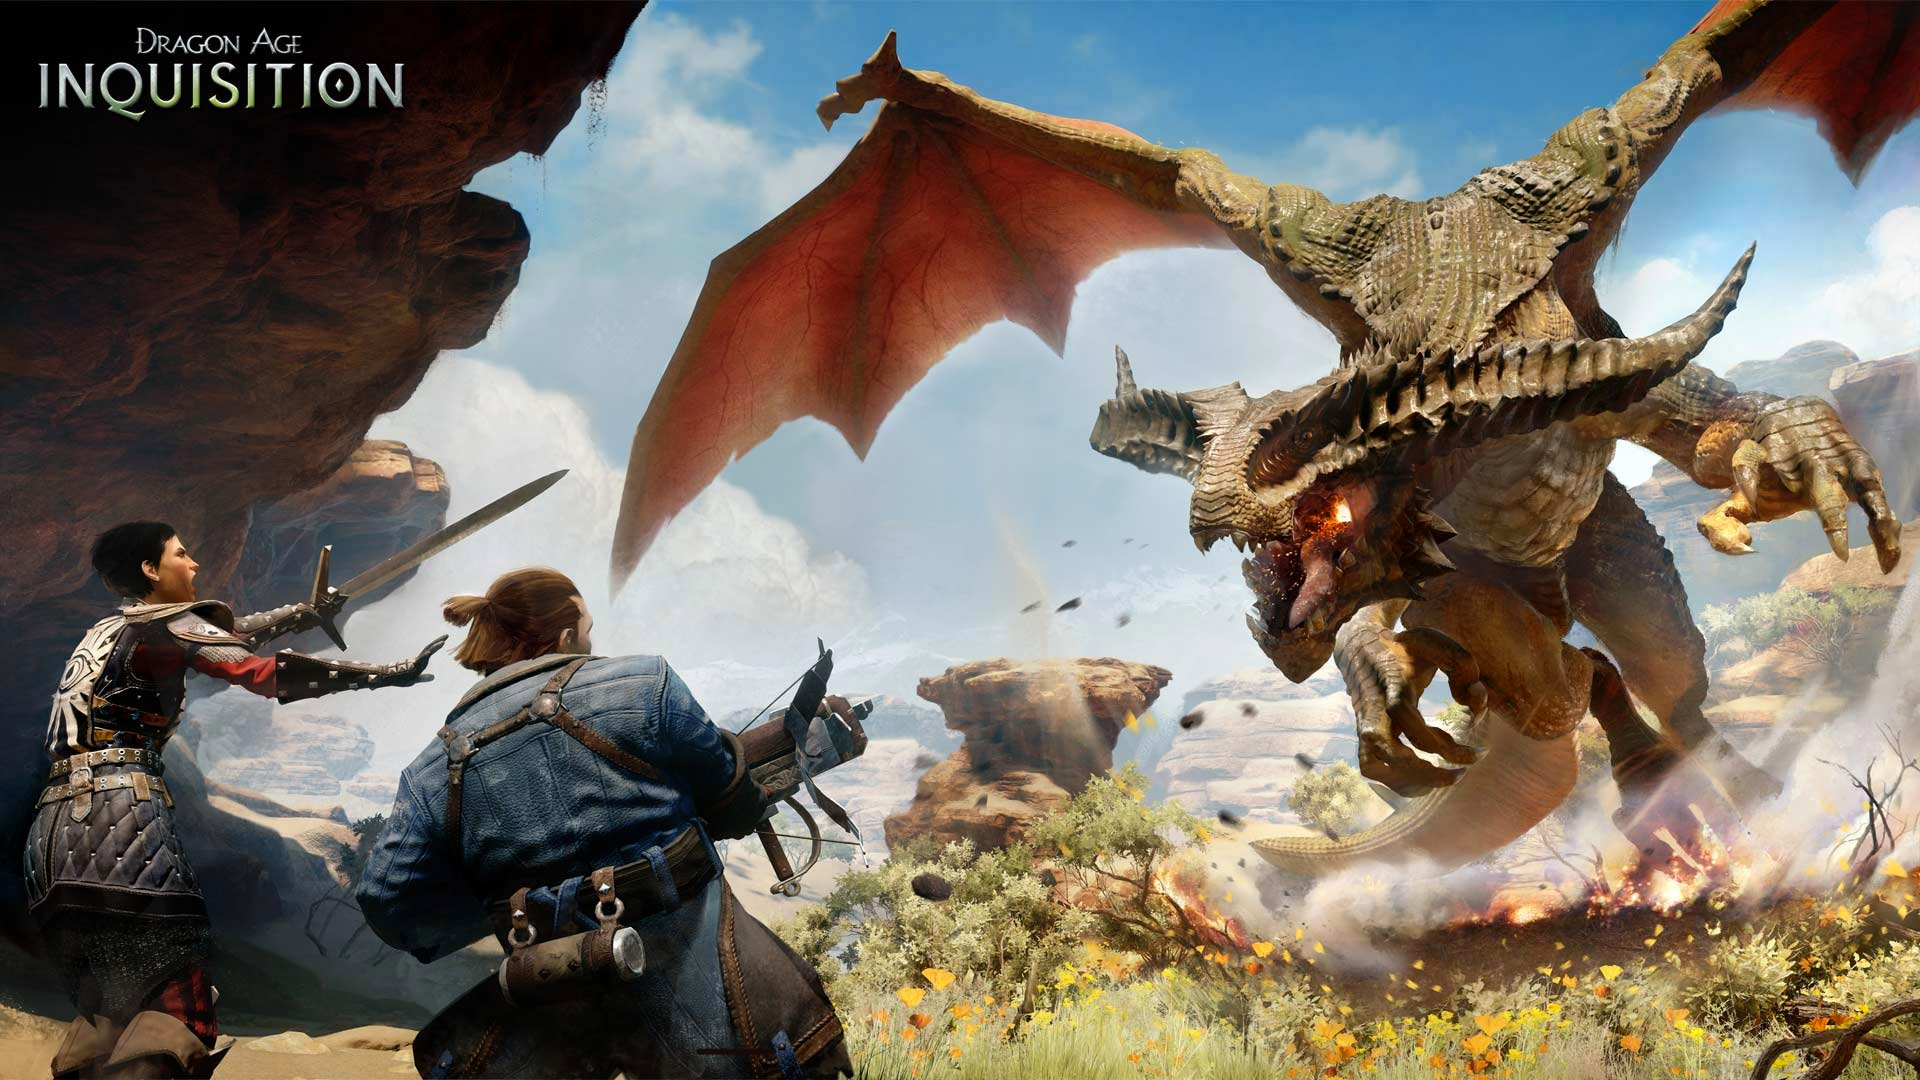 Multiplayer comes to Dragon Age with Inquisition's 4-player co-op mode